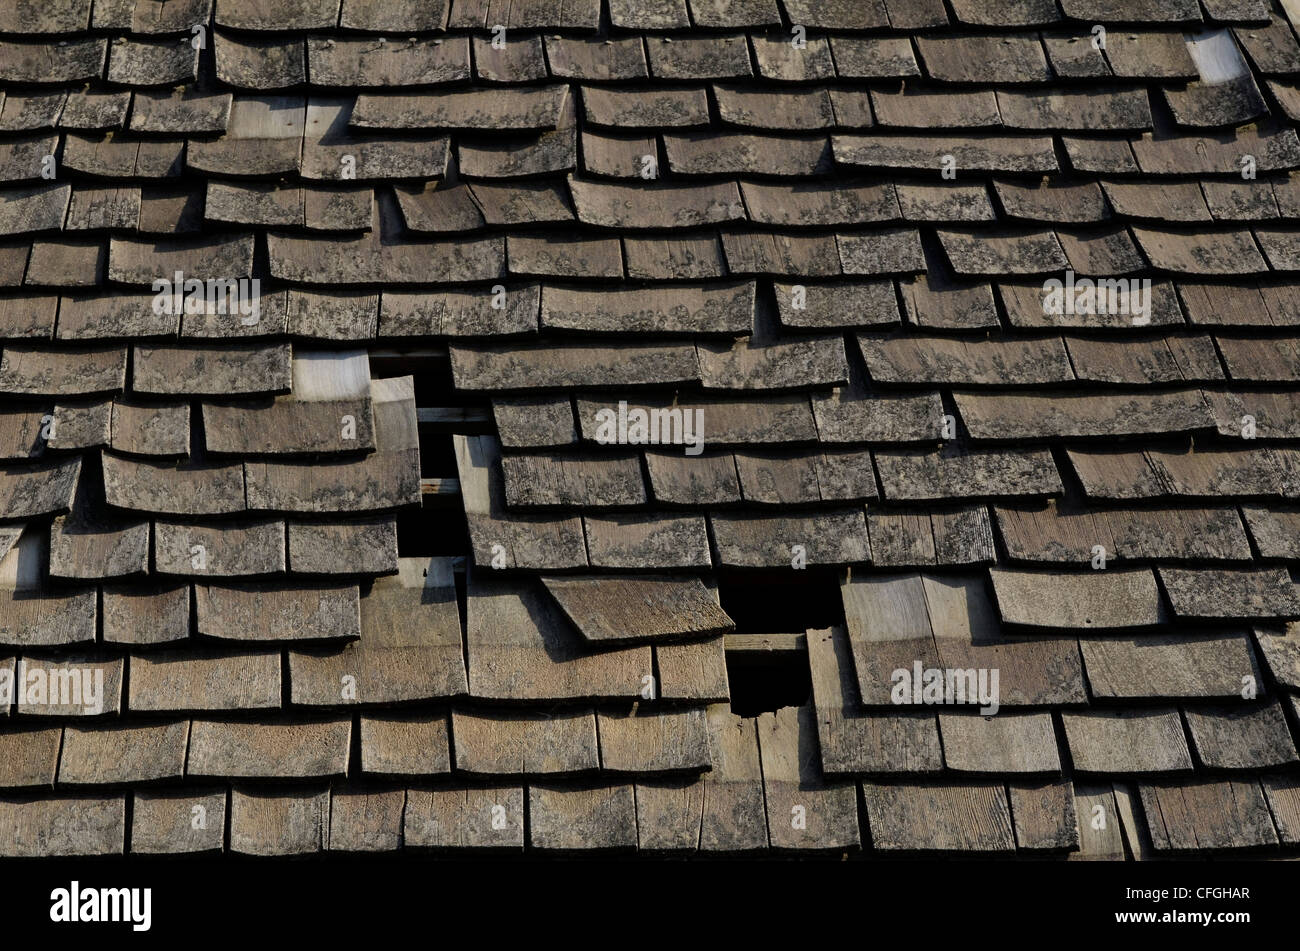 Decaying wood shingle roof. Damaged wood texture, wooden structure. [FOCUS POINT note in Description.] Possible - Stock Image